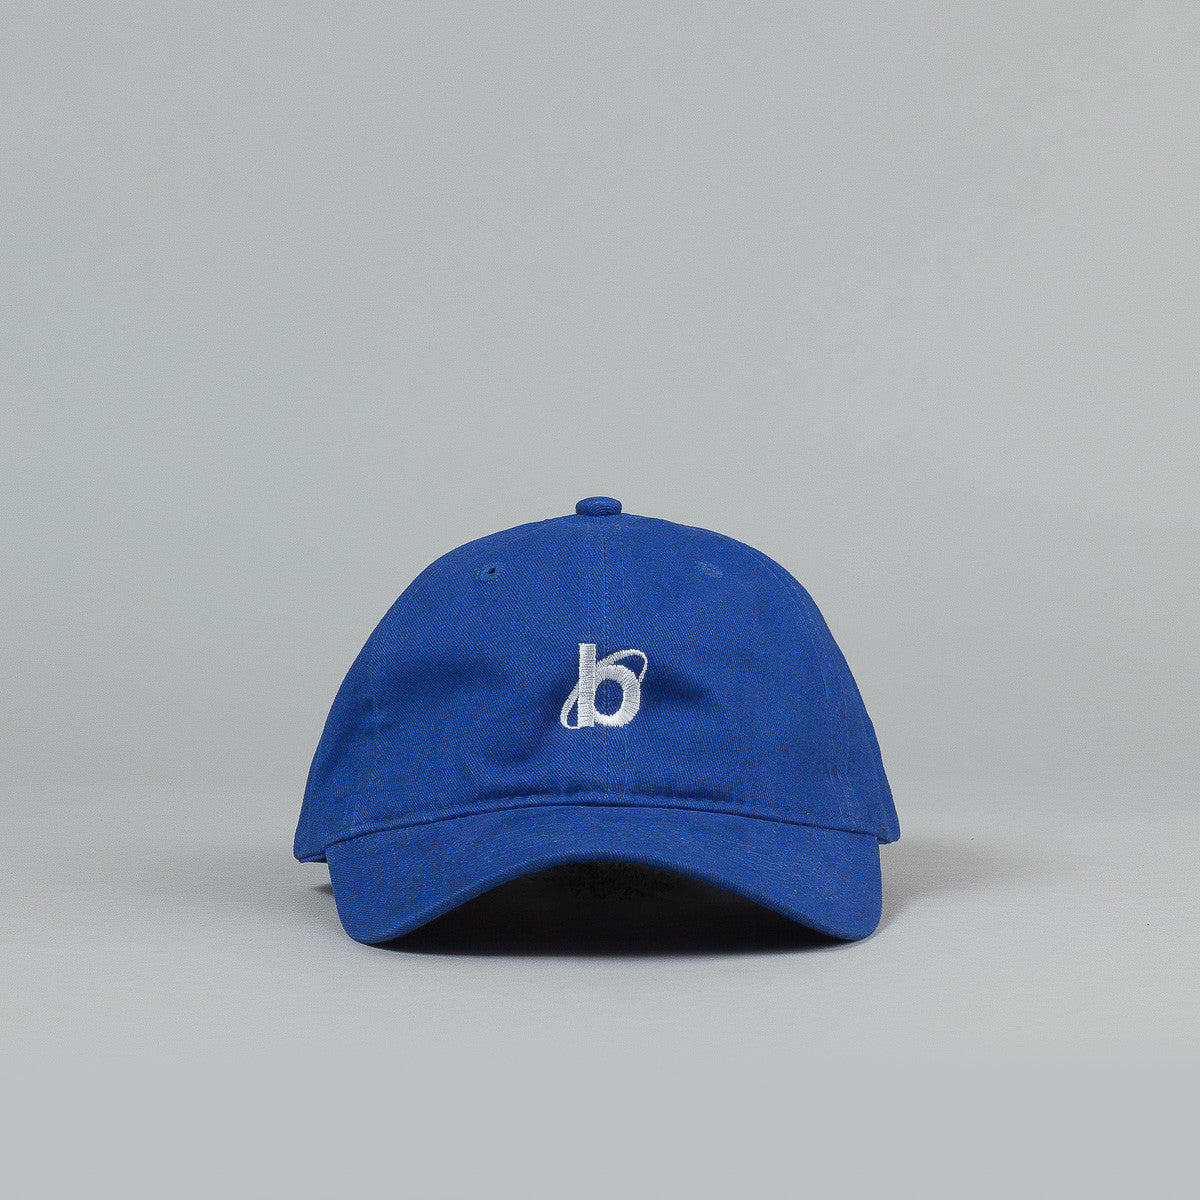 Bronze 56k Explorer Cap - Royal Blue